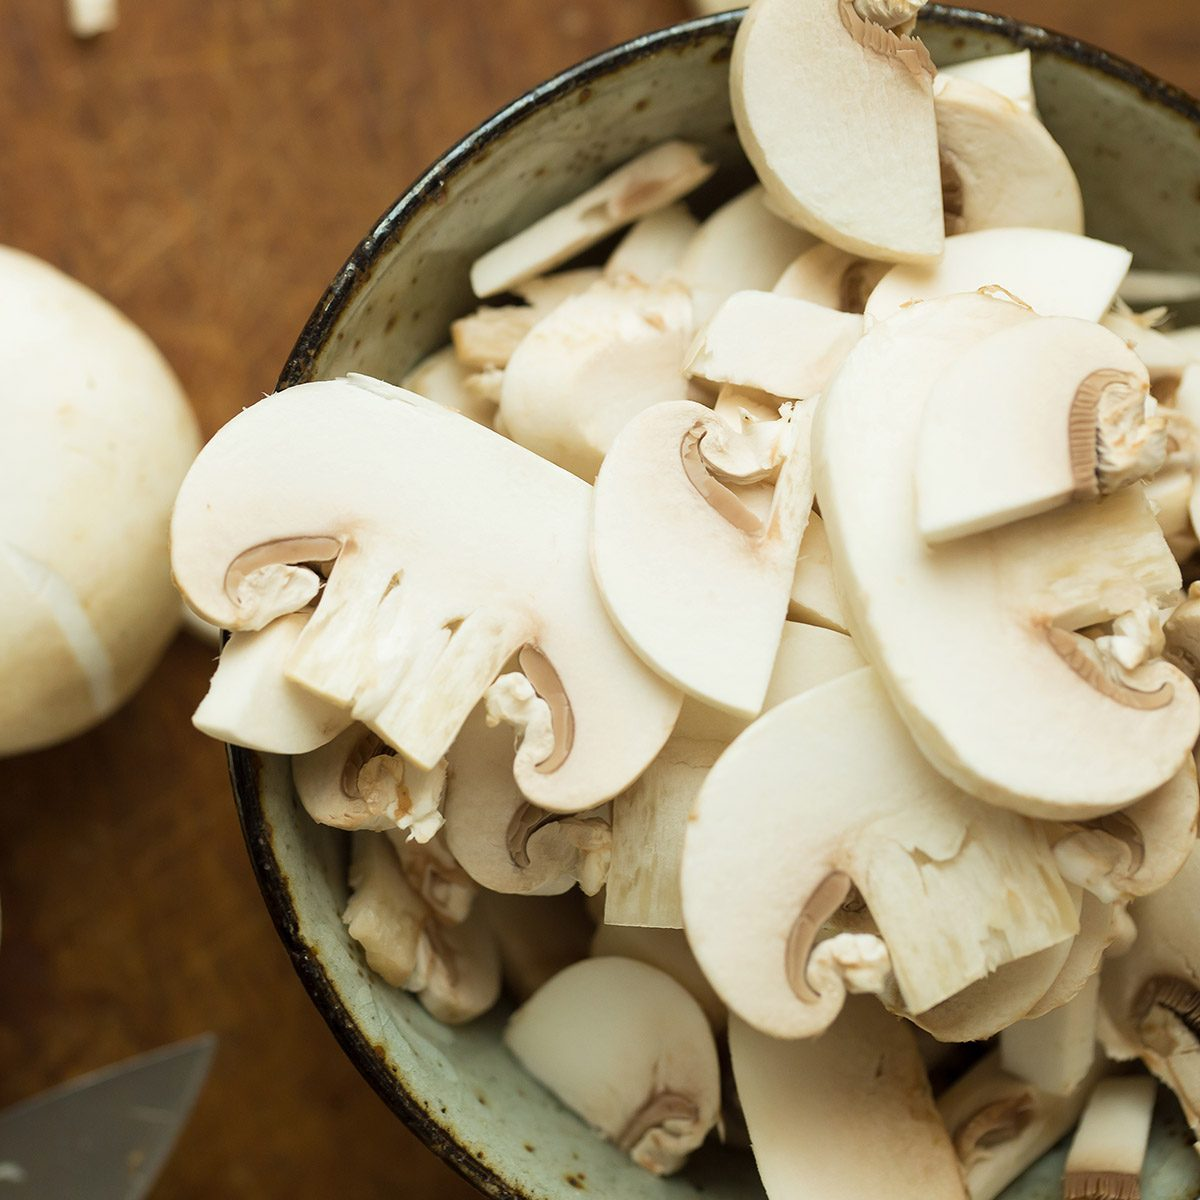 Champignon mushrooms on the wooden table. Selective focus.; Shutterstock ID 618976709